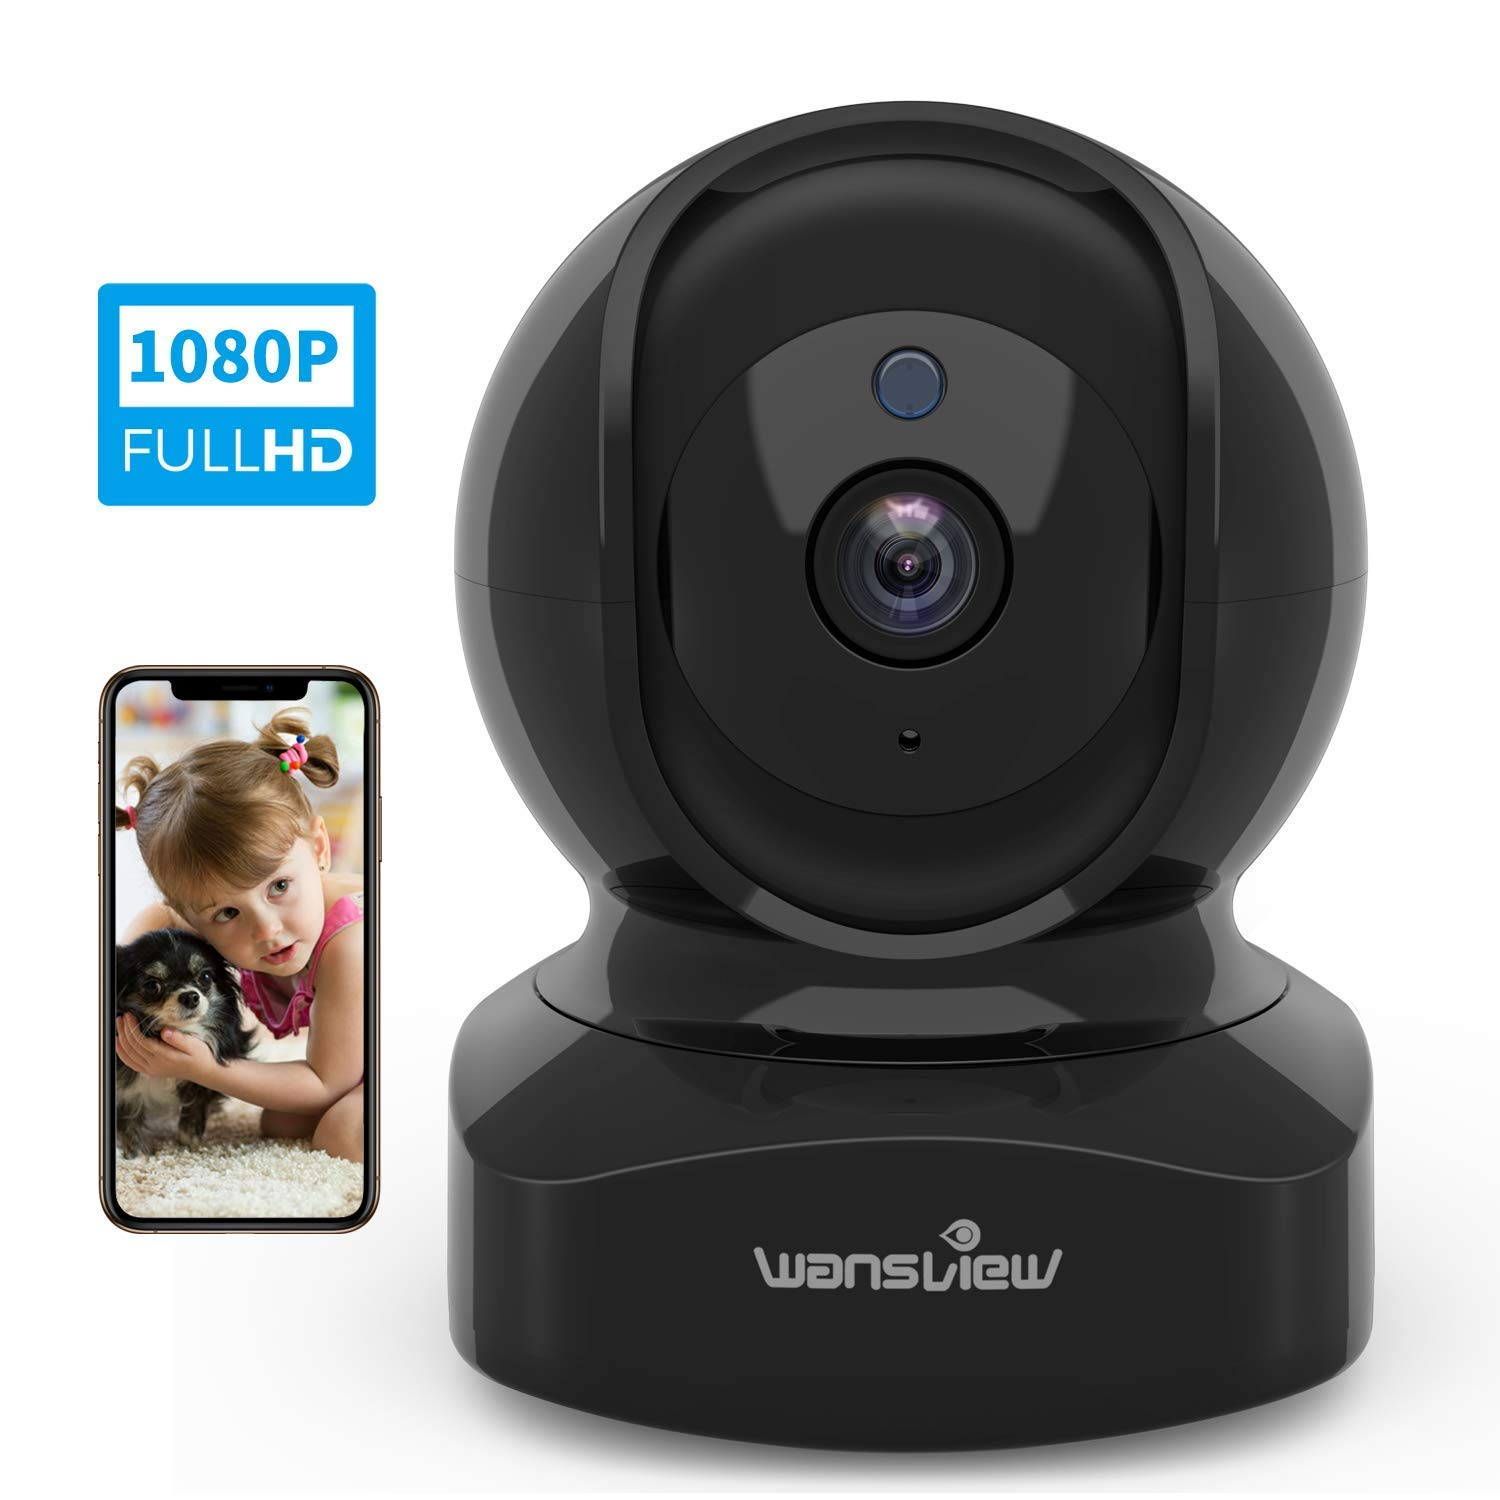 Wireless Security Camera, IP Camera 1080P HD Wansview, WiFi Home Indoor  Camera for Baby/Pet/Nanny, Motion Detection, 2 Way Audio Night Vision,  Works